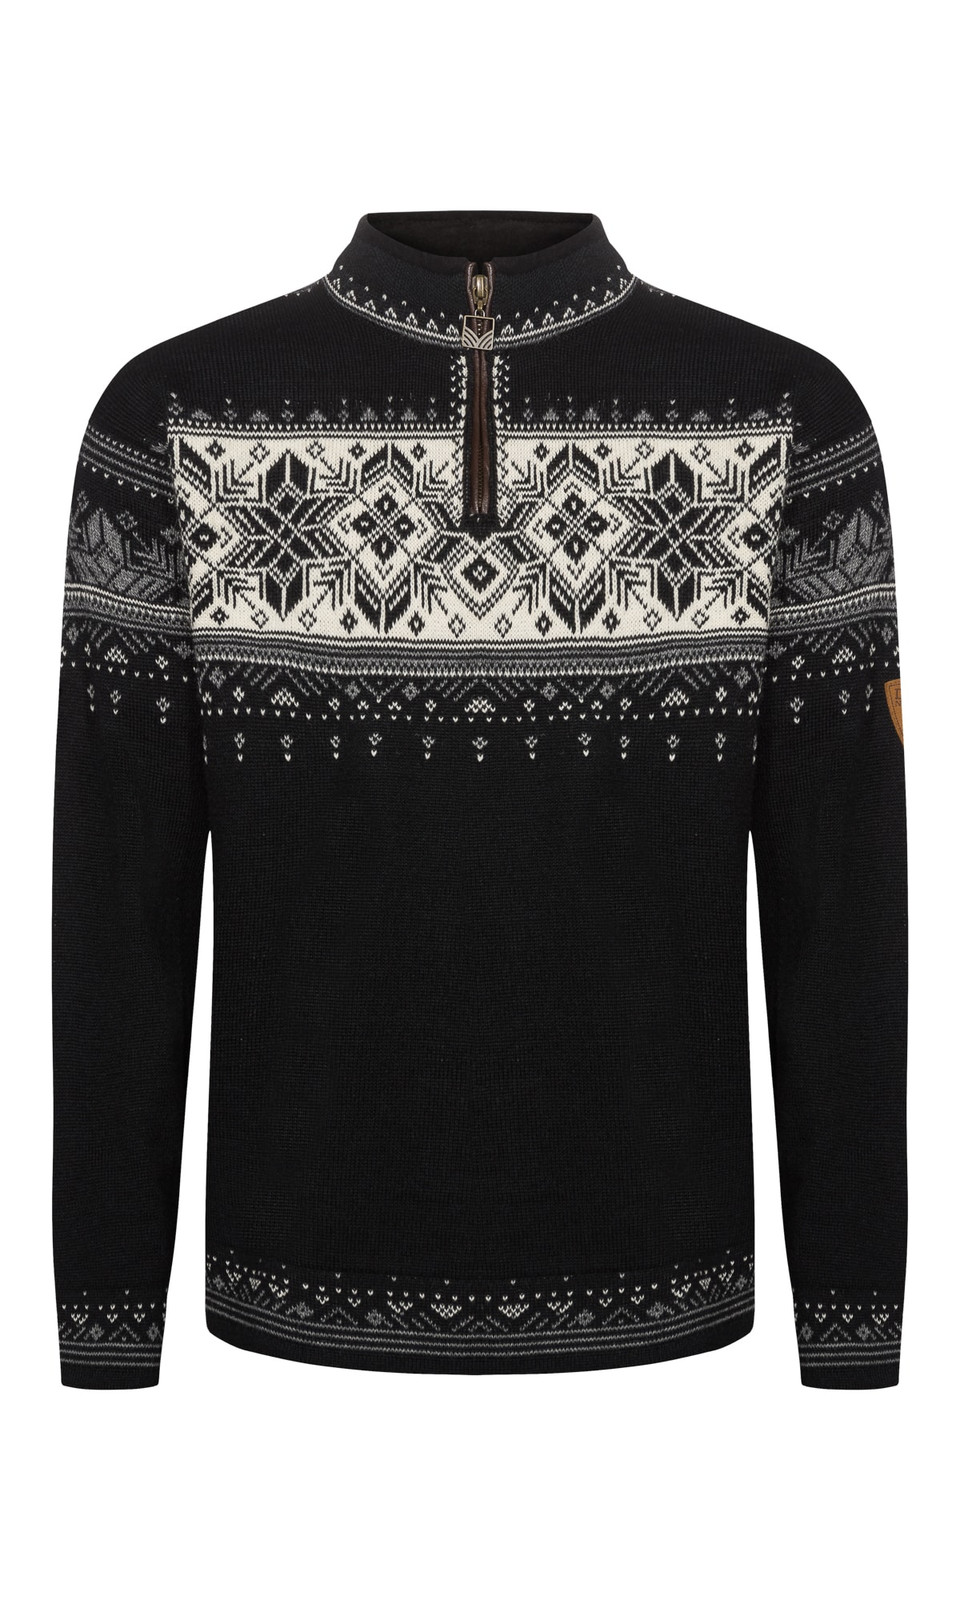 Dale of Norway Blyfjell Sweater - Black/Smoke/Off White/Light Charcoal, 91291-K